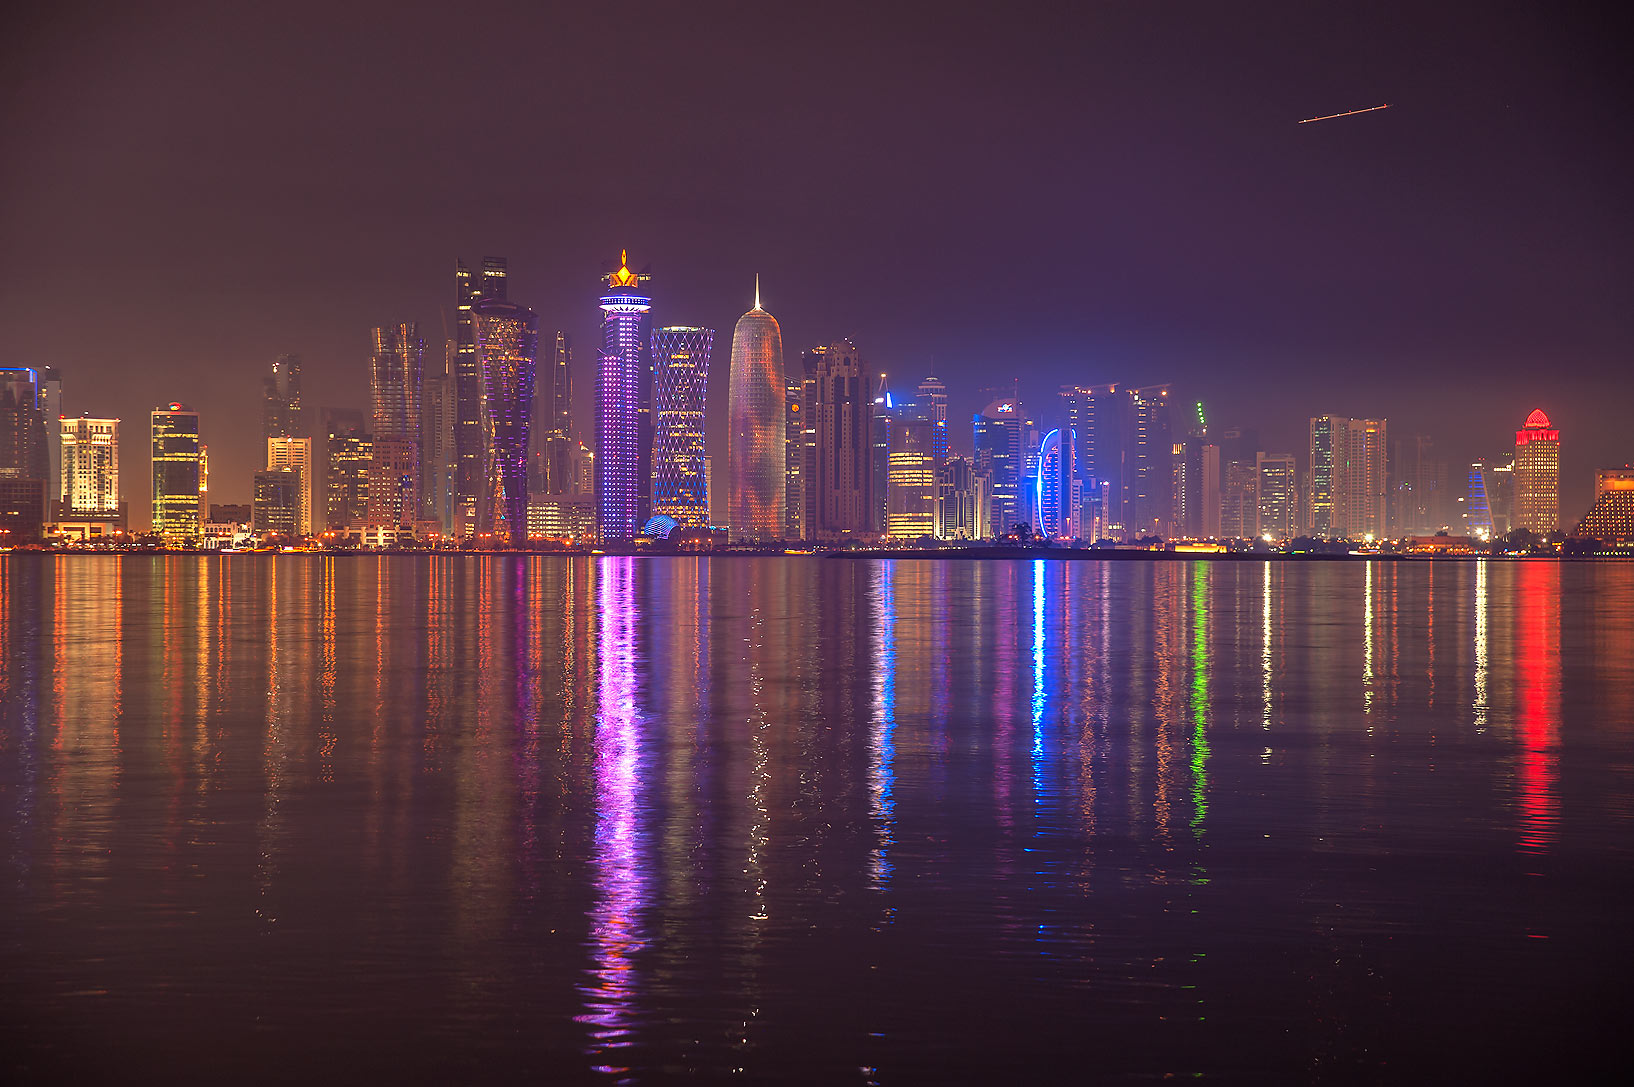 Reflections of West Bay towers from Corniche promenade at evening. Doha, Qatar